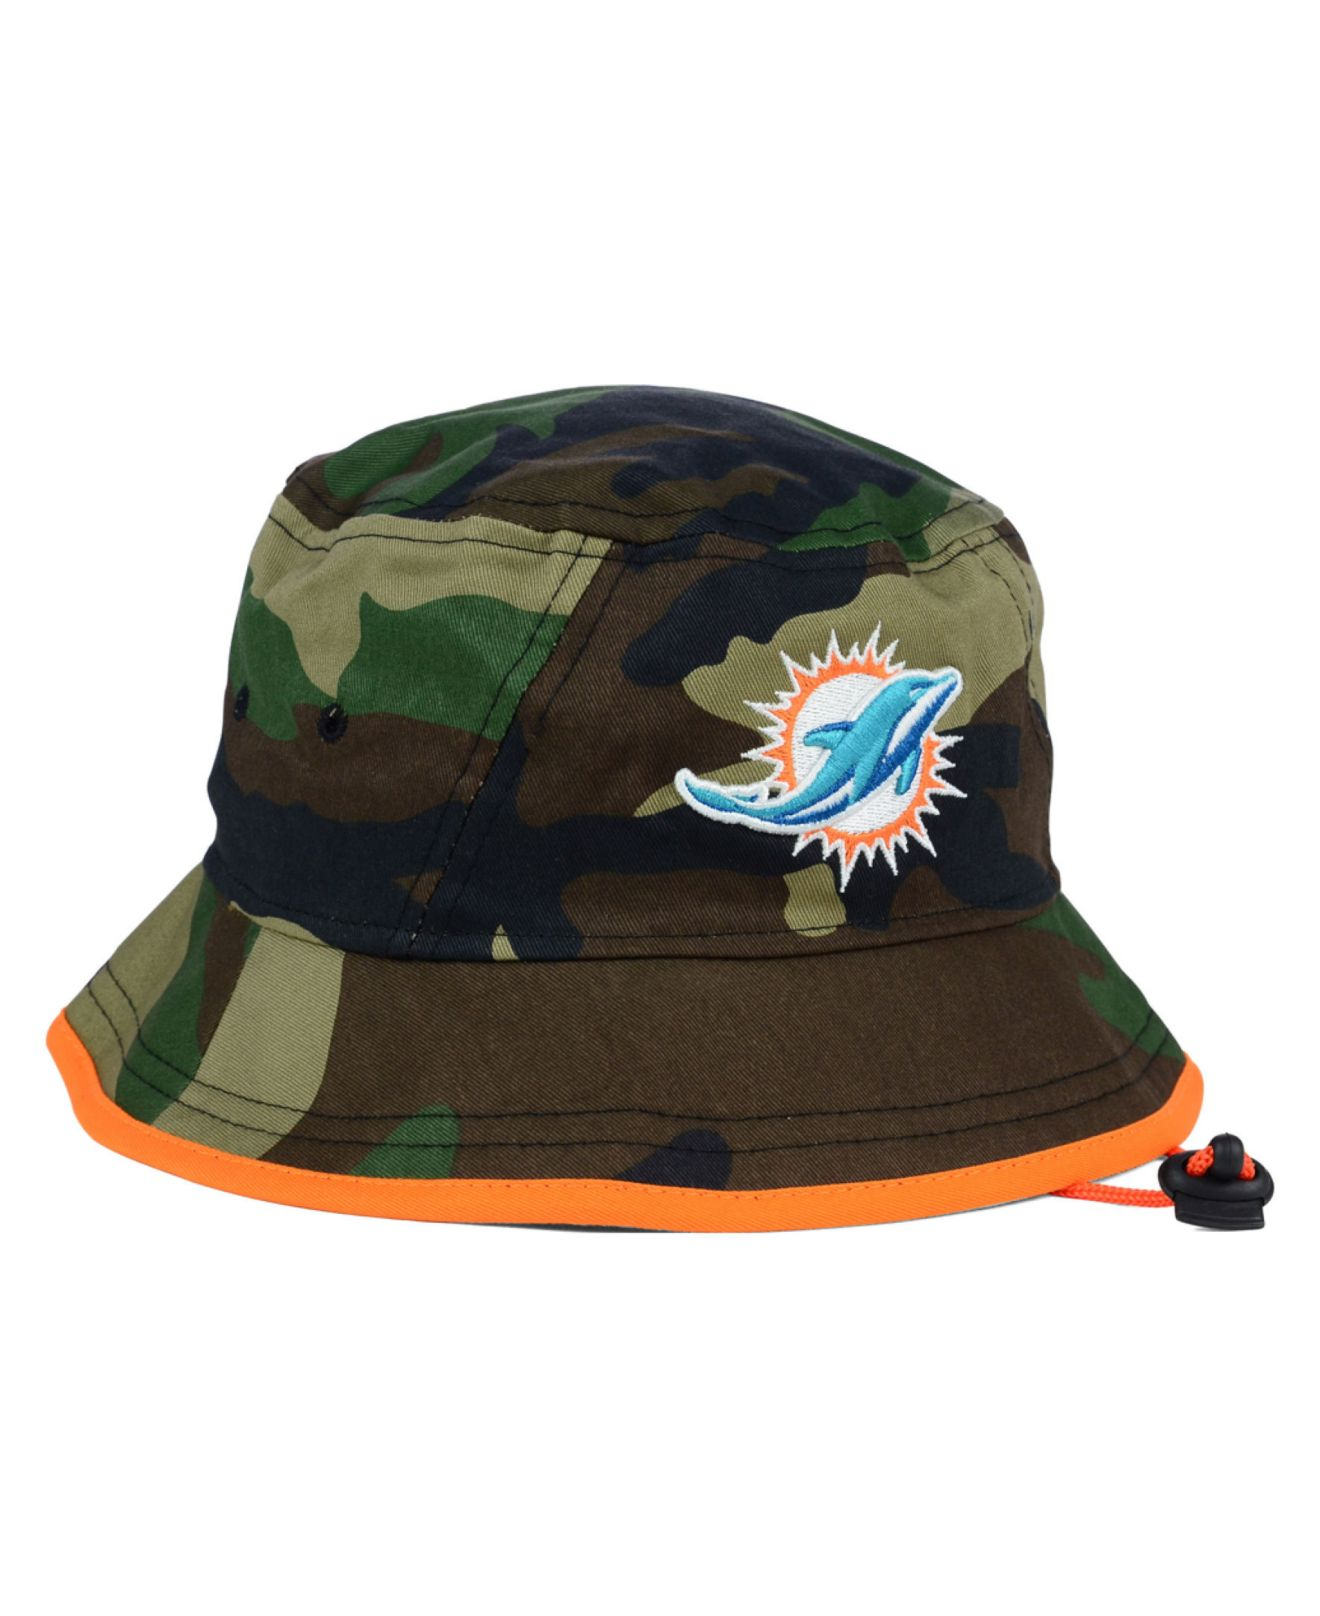 f24d9f50e2e ... greece lyst ktz miami dolphins camo pop bucket hat in green for men  e1724 77667 ...